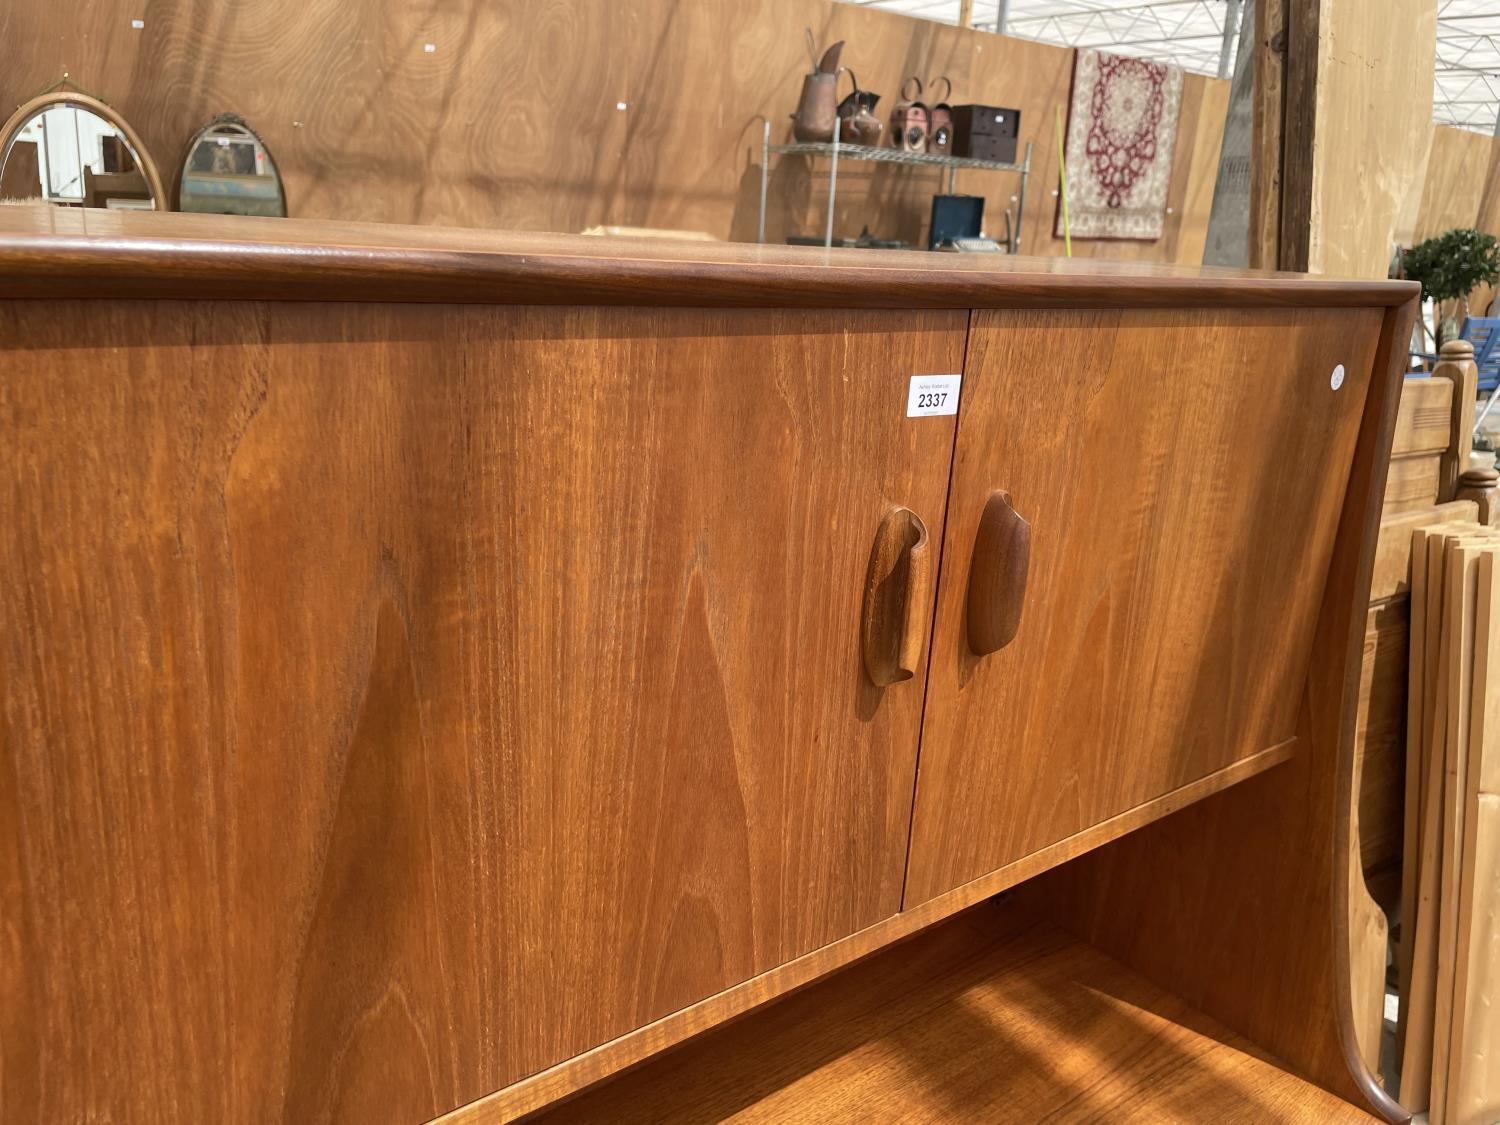 A G PLAN RETRO TEAK SIDEBOARD WITH UPPER CABINET - Image 2 of 8